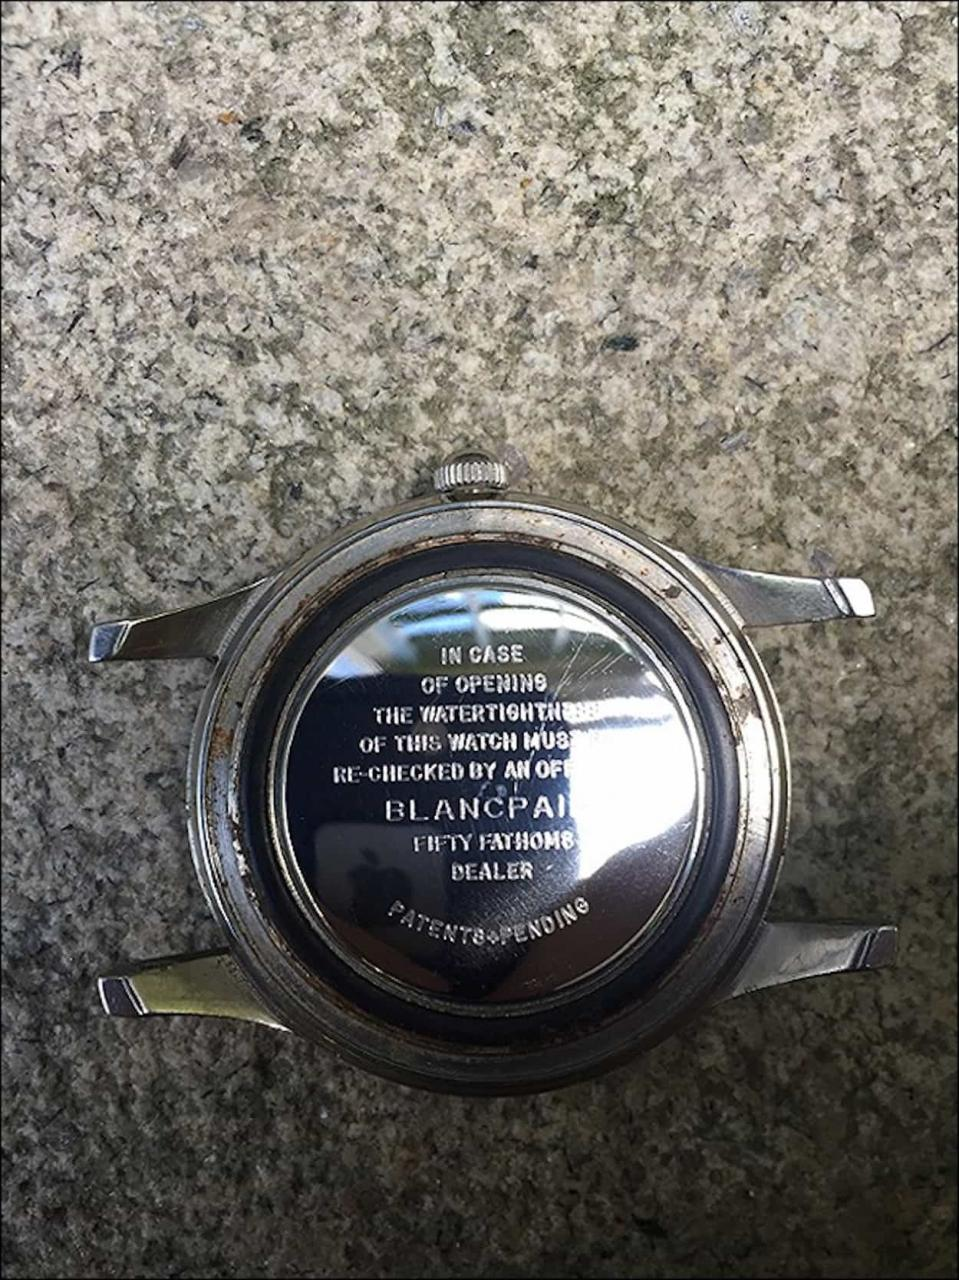 Blancpain Fifty Fathoms dust cover